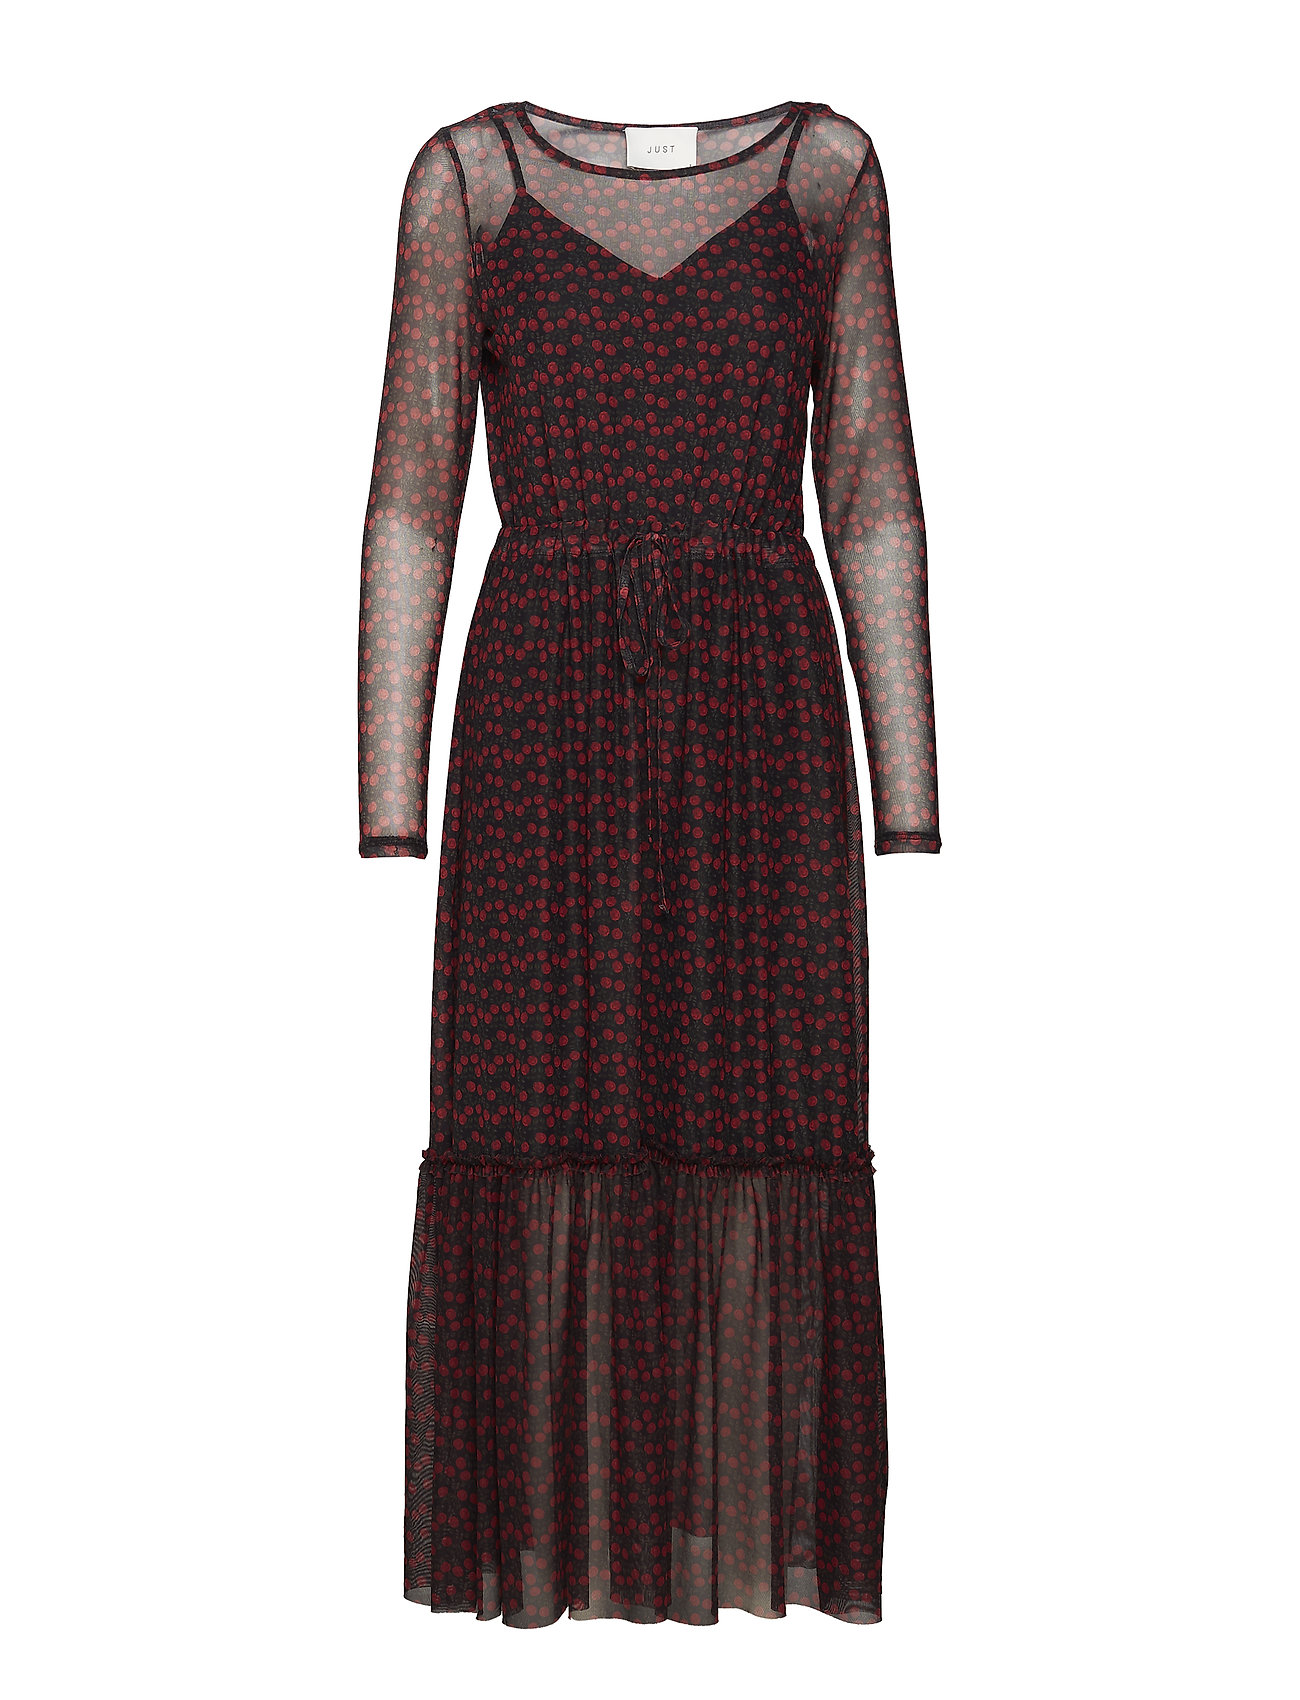 Image of Alley Maxi Dress Maxikjole Festkjole Rød Just Female (3197188617)